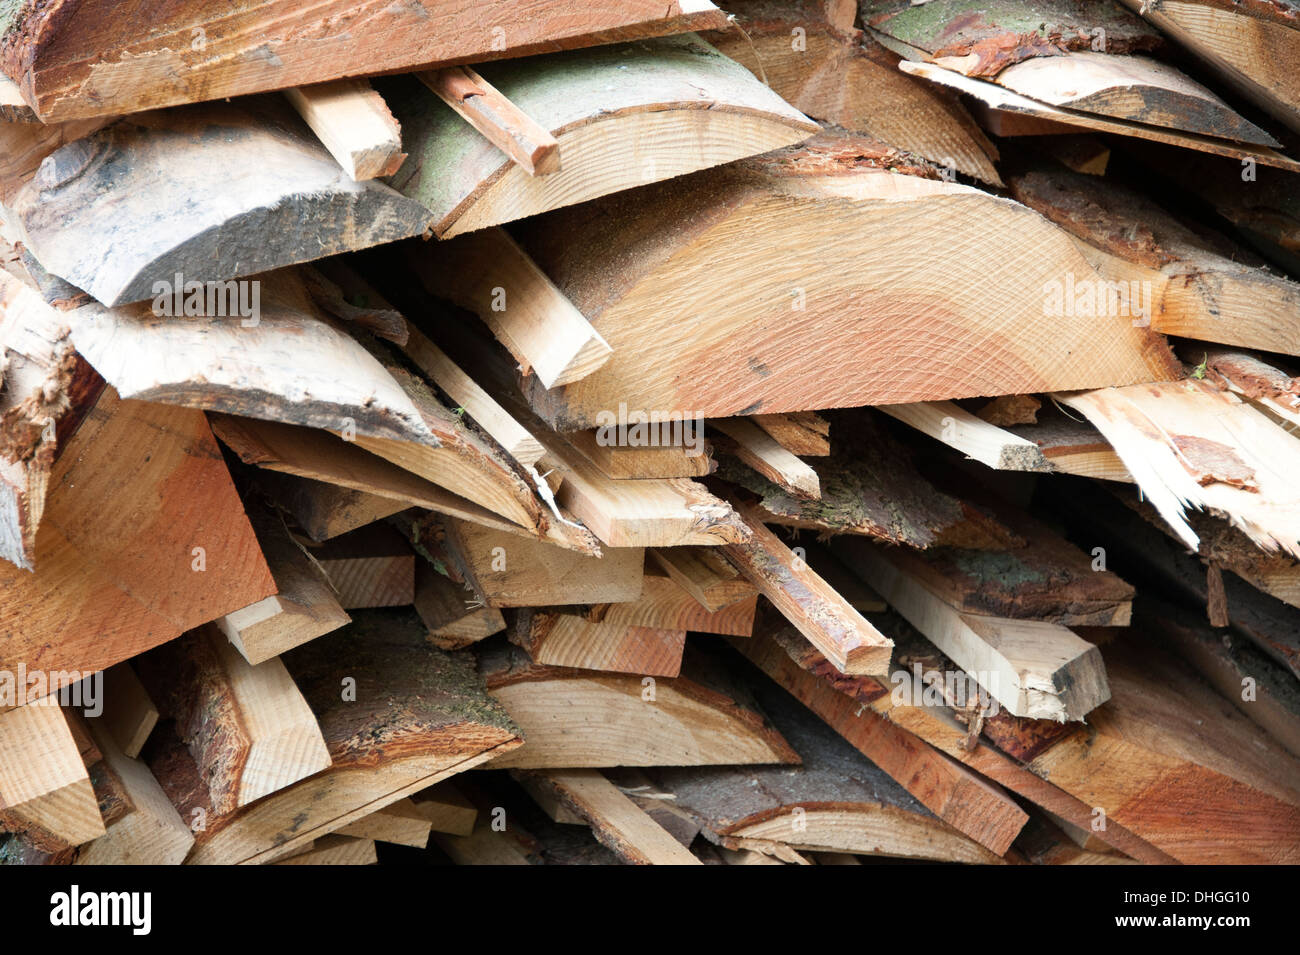 Saw Mill tree trunks cut timber planks of wood new - Stock Image